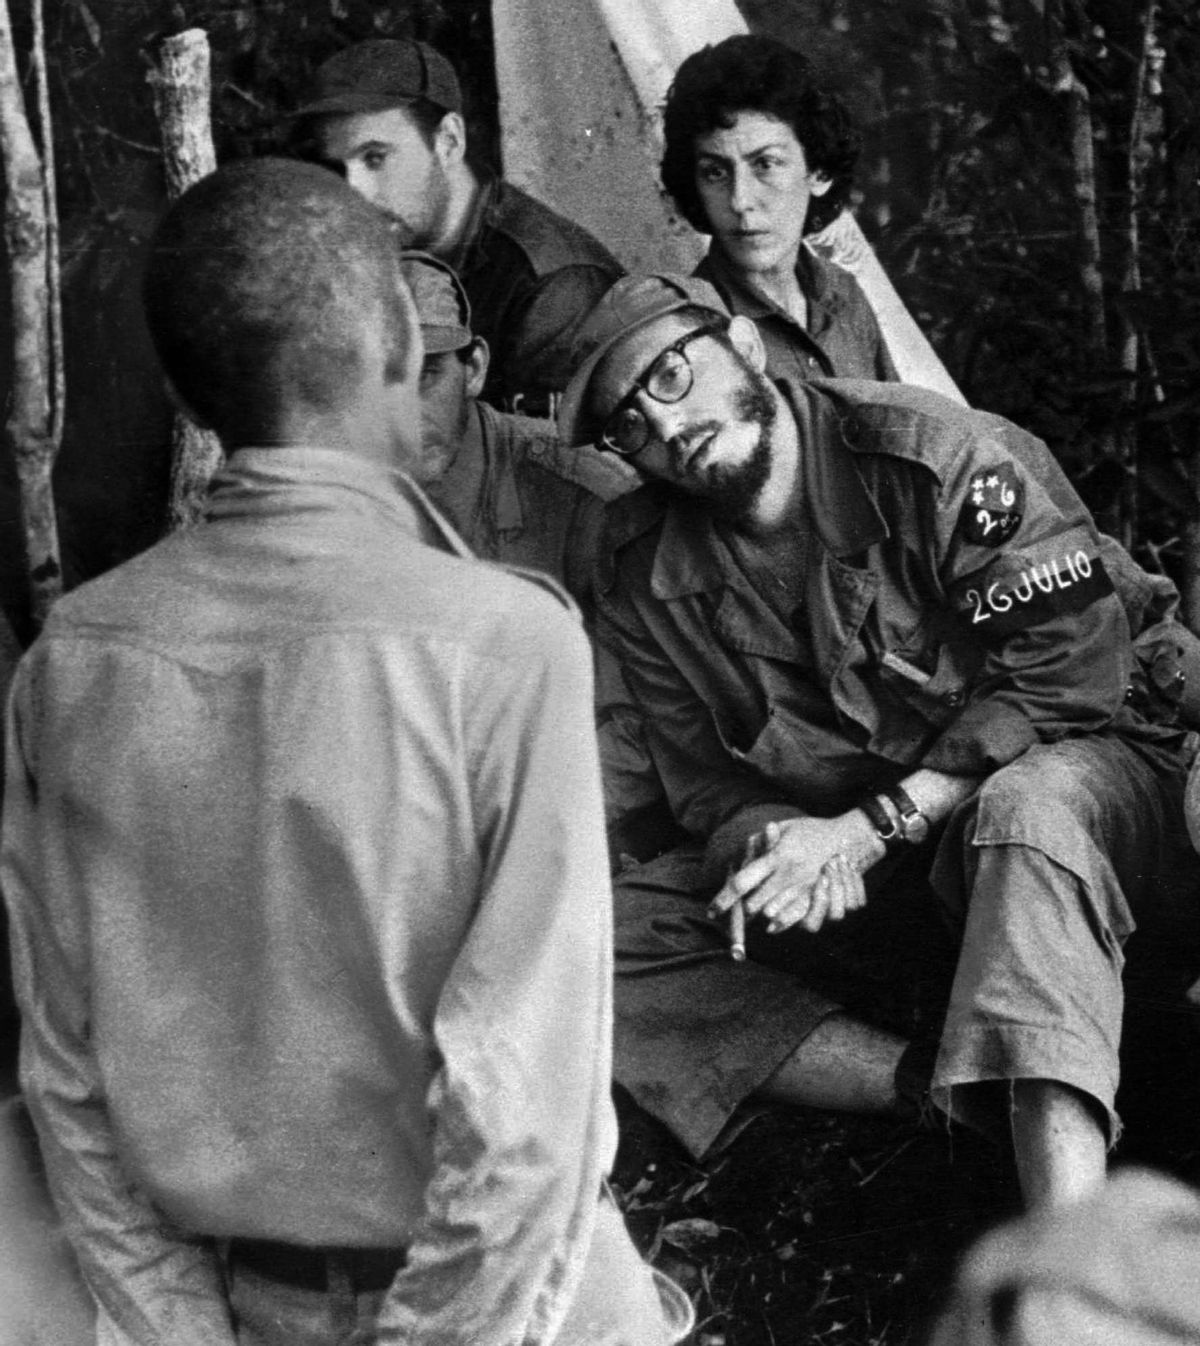 FILE - In this 1958 file photo, Cuba's leader Fidel Castro, center, questions a man charged with banditry as Celia Sanchez looks on during a trial held in the guerrillas' base in the Cuban mountain range of Sierra Maestra.  (AP)